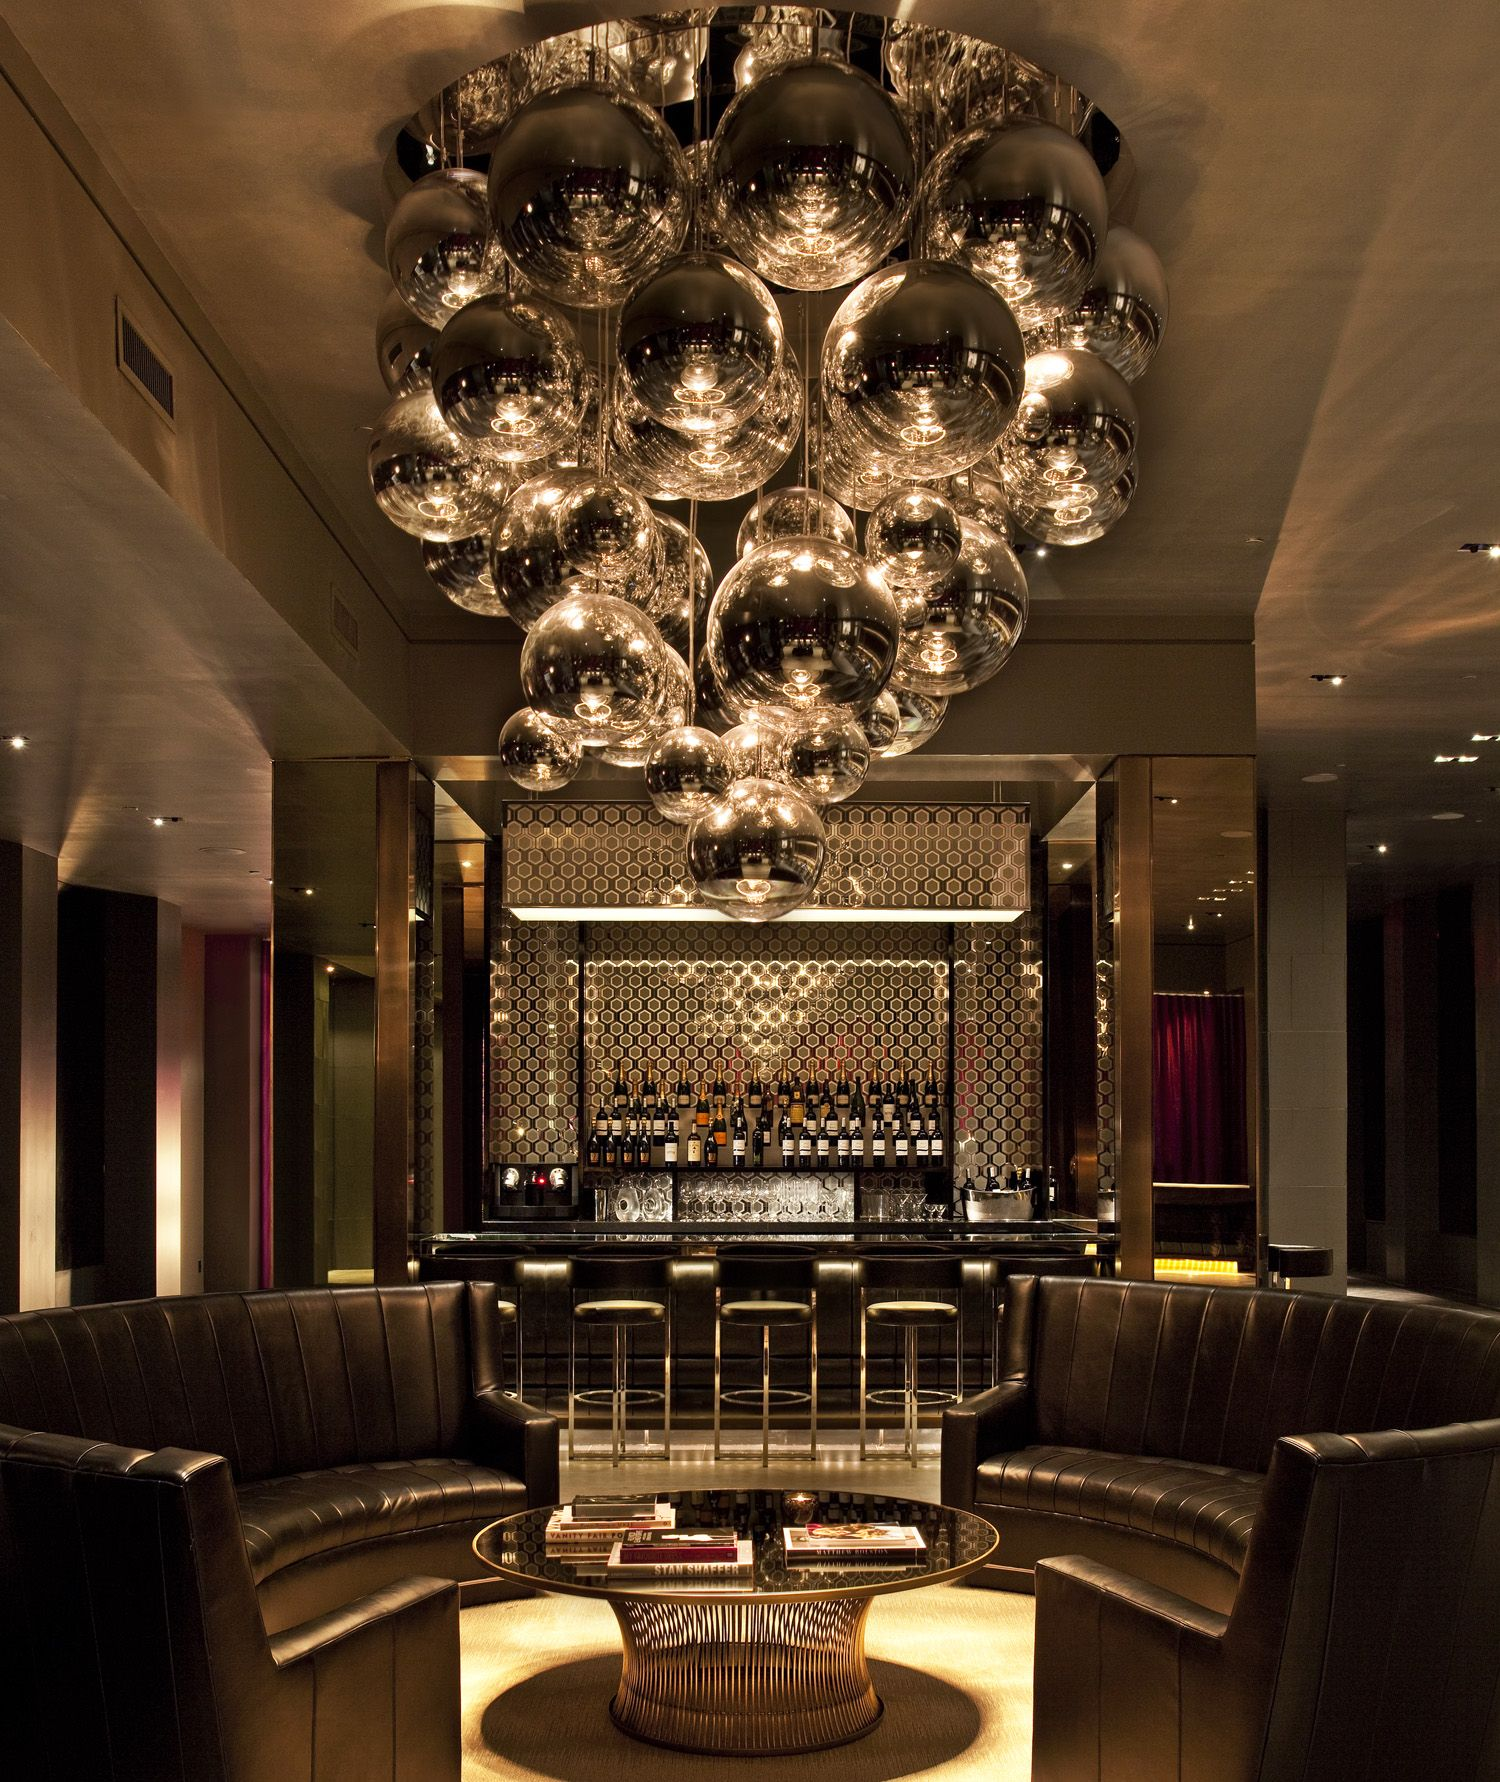 This Hotel Lobby Design Has A Clic Décor Ideas That Really Adapts To The Vibrant City Of New York From Moment You Enter Feel